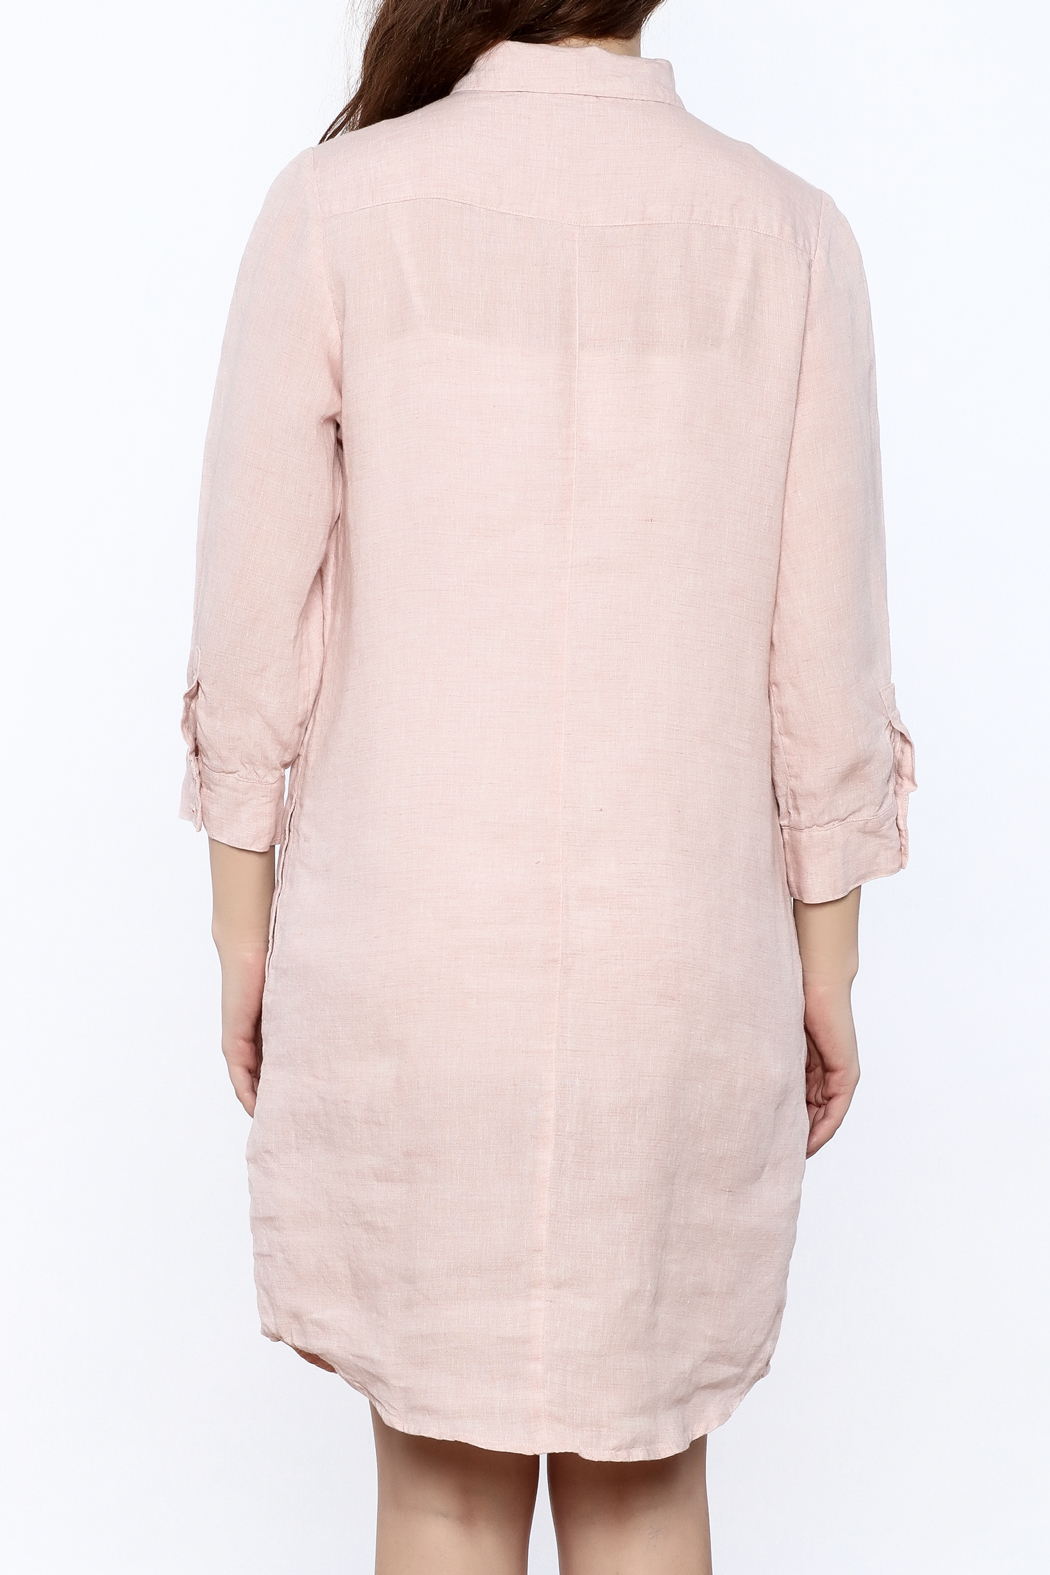 Studio 412 Ballet Pink Linen Dress - Back Cropped Image